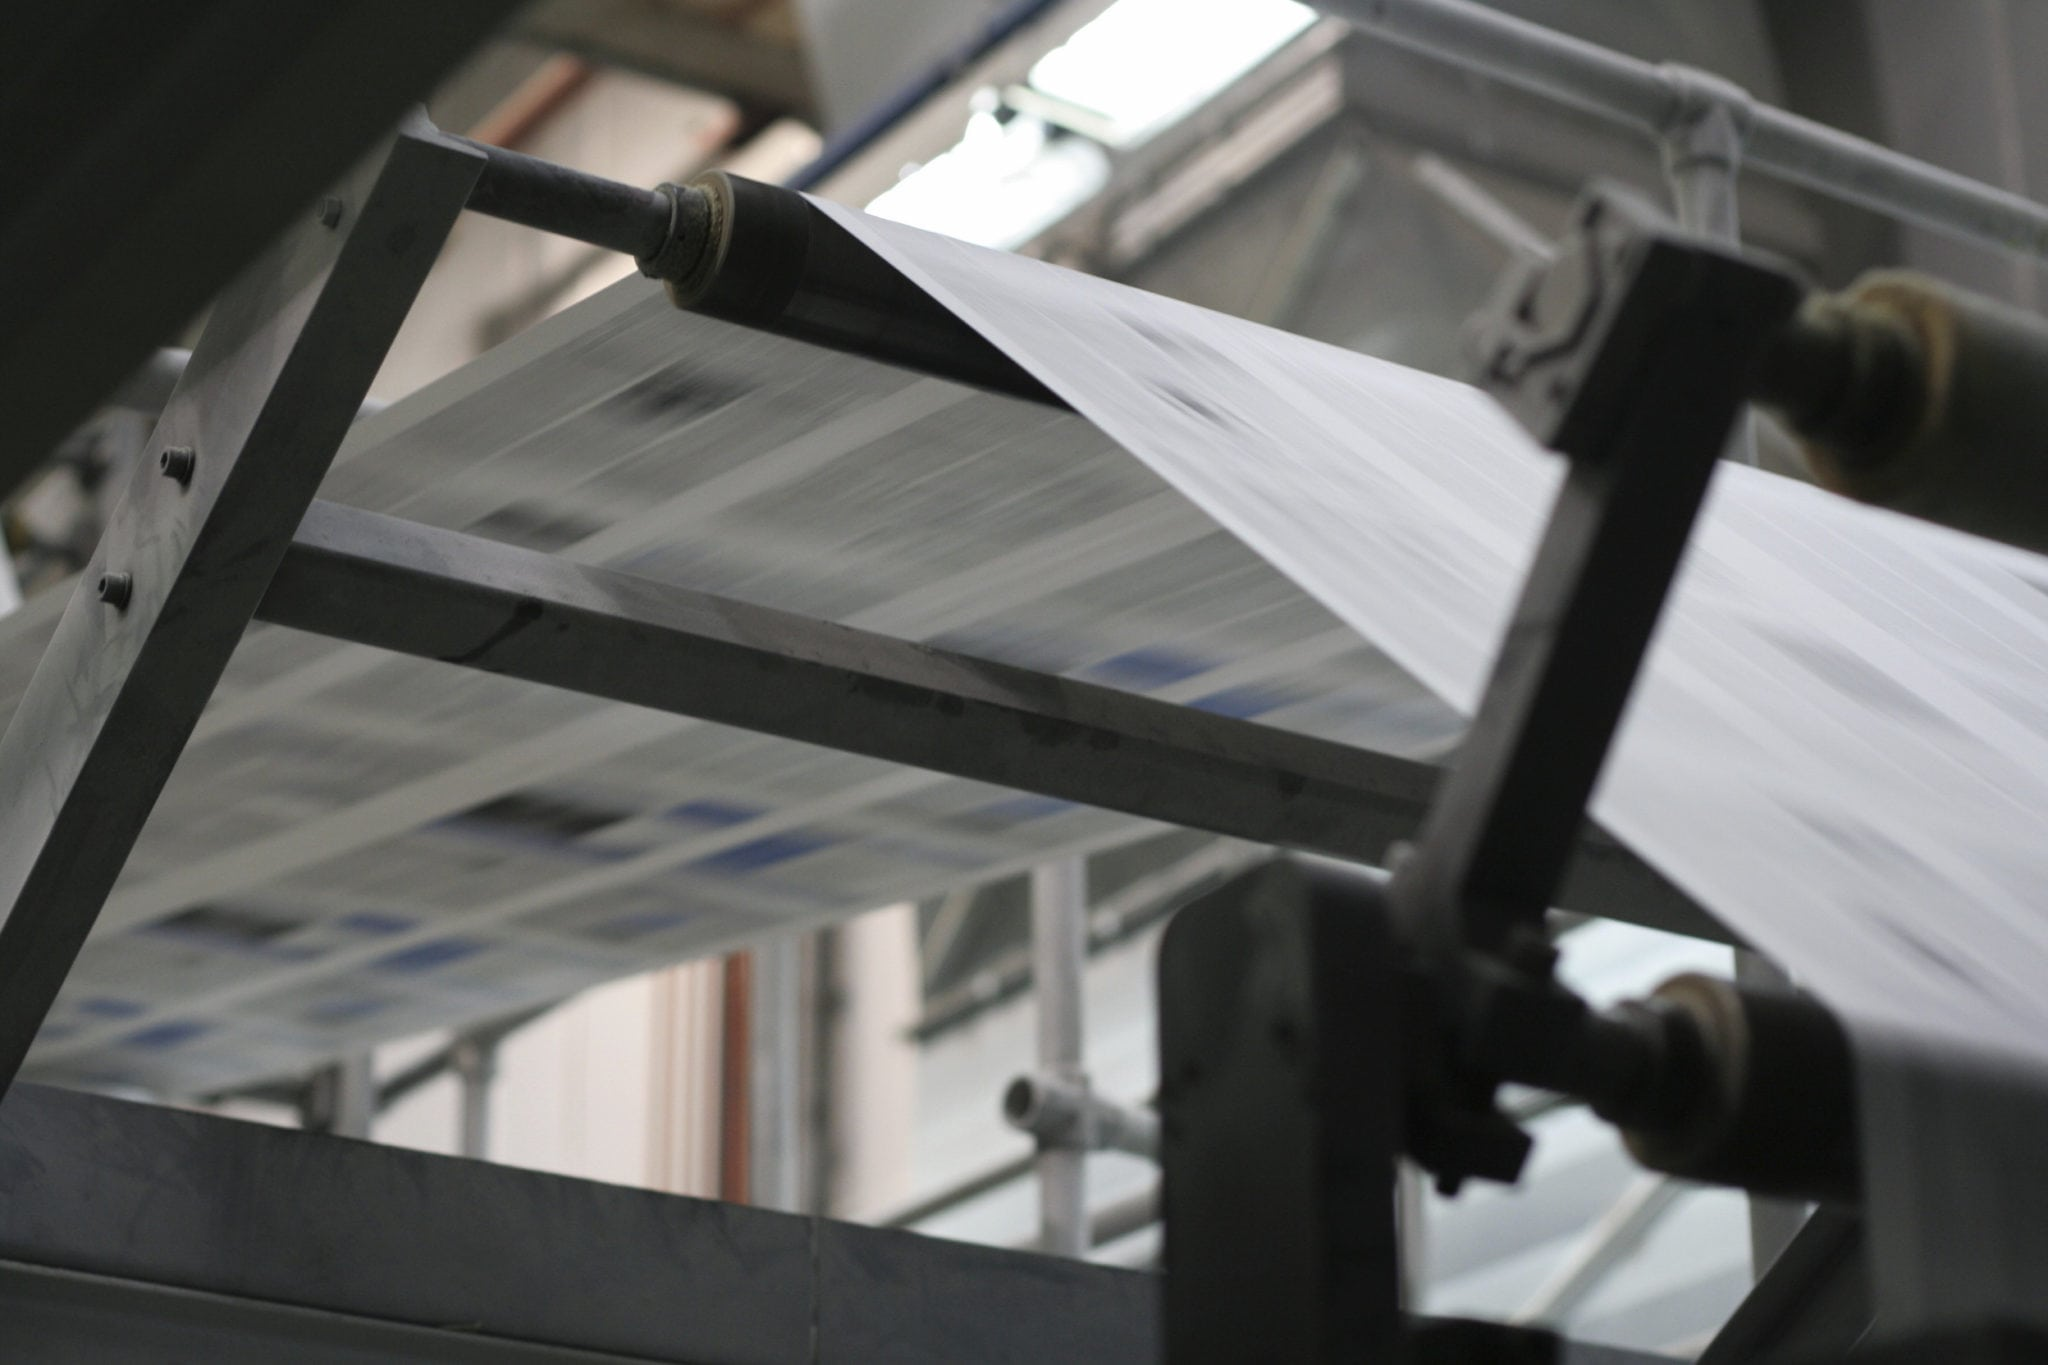 IIC sets up automation testbed for print industry with Fujitsu, IBM